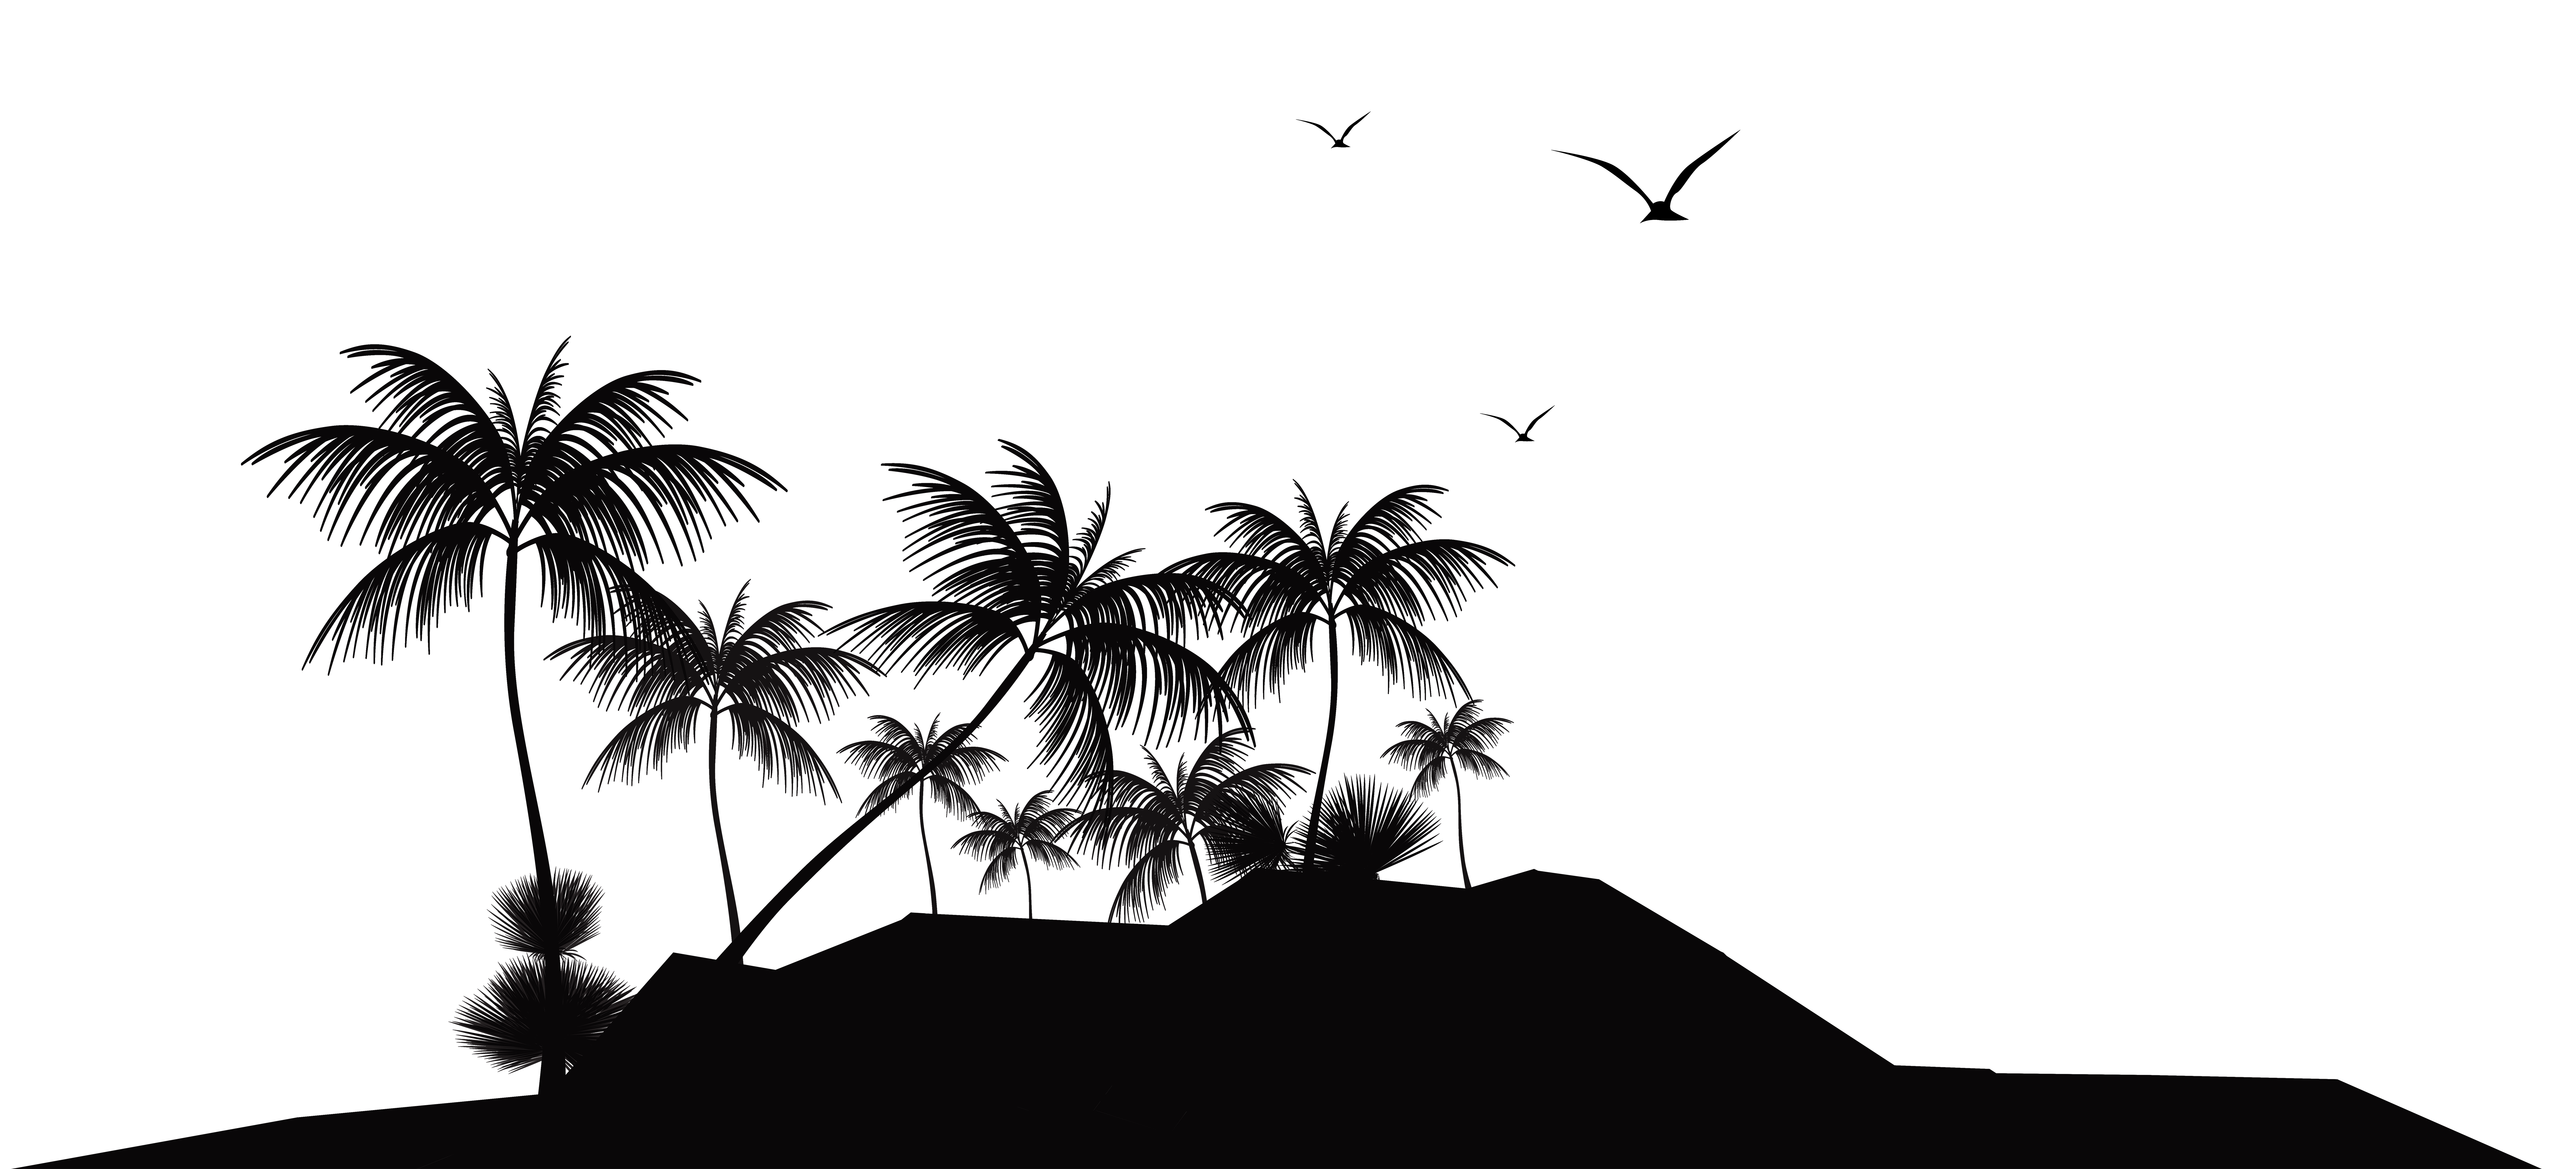 Island clipart. Tropical silhouette png clip